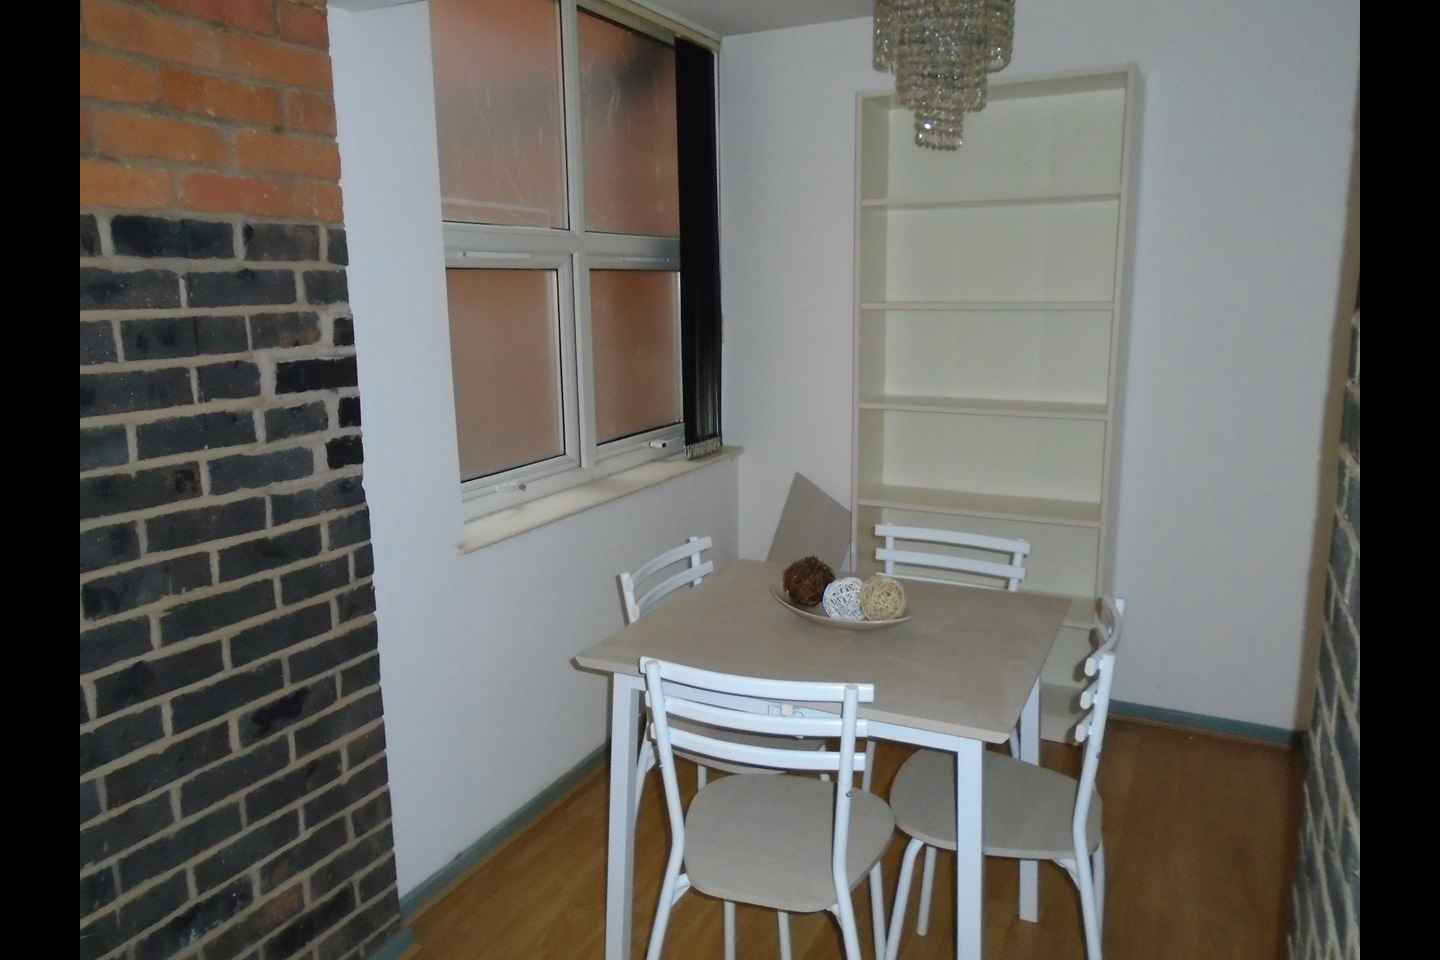 Leicester 2 bed flat marquis street le1 to rent now for G bathrooms leicester